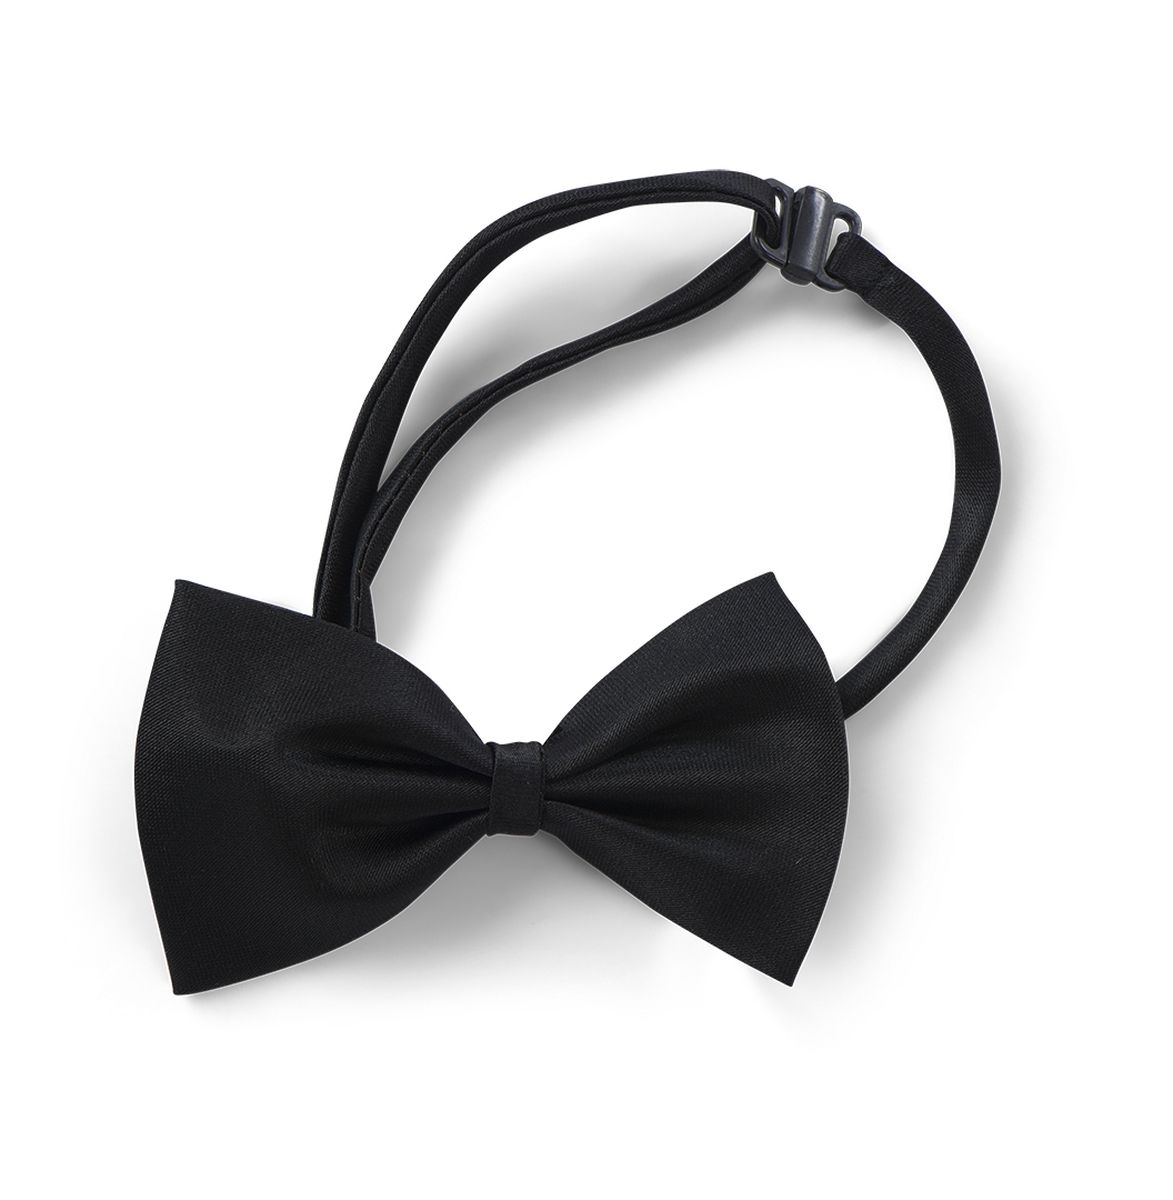 BOW TIE WITH STRAP AND ADJUSTER